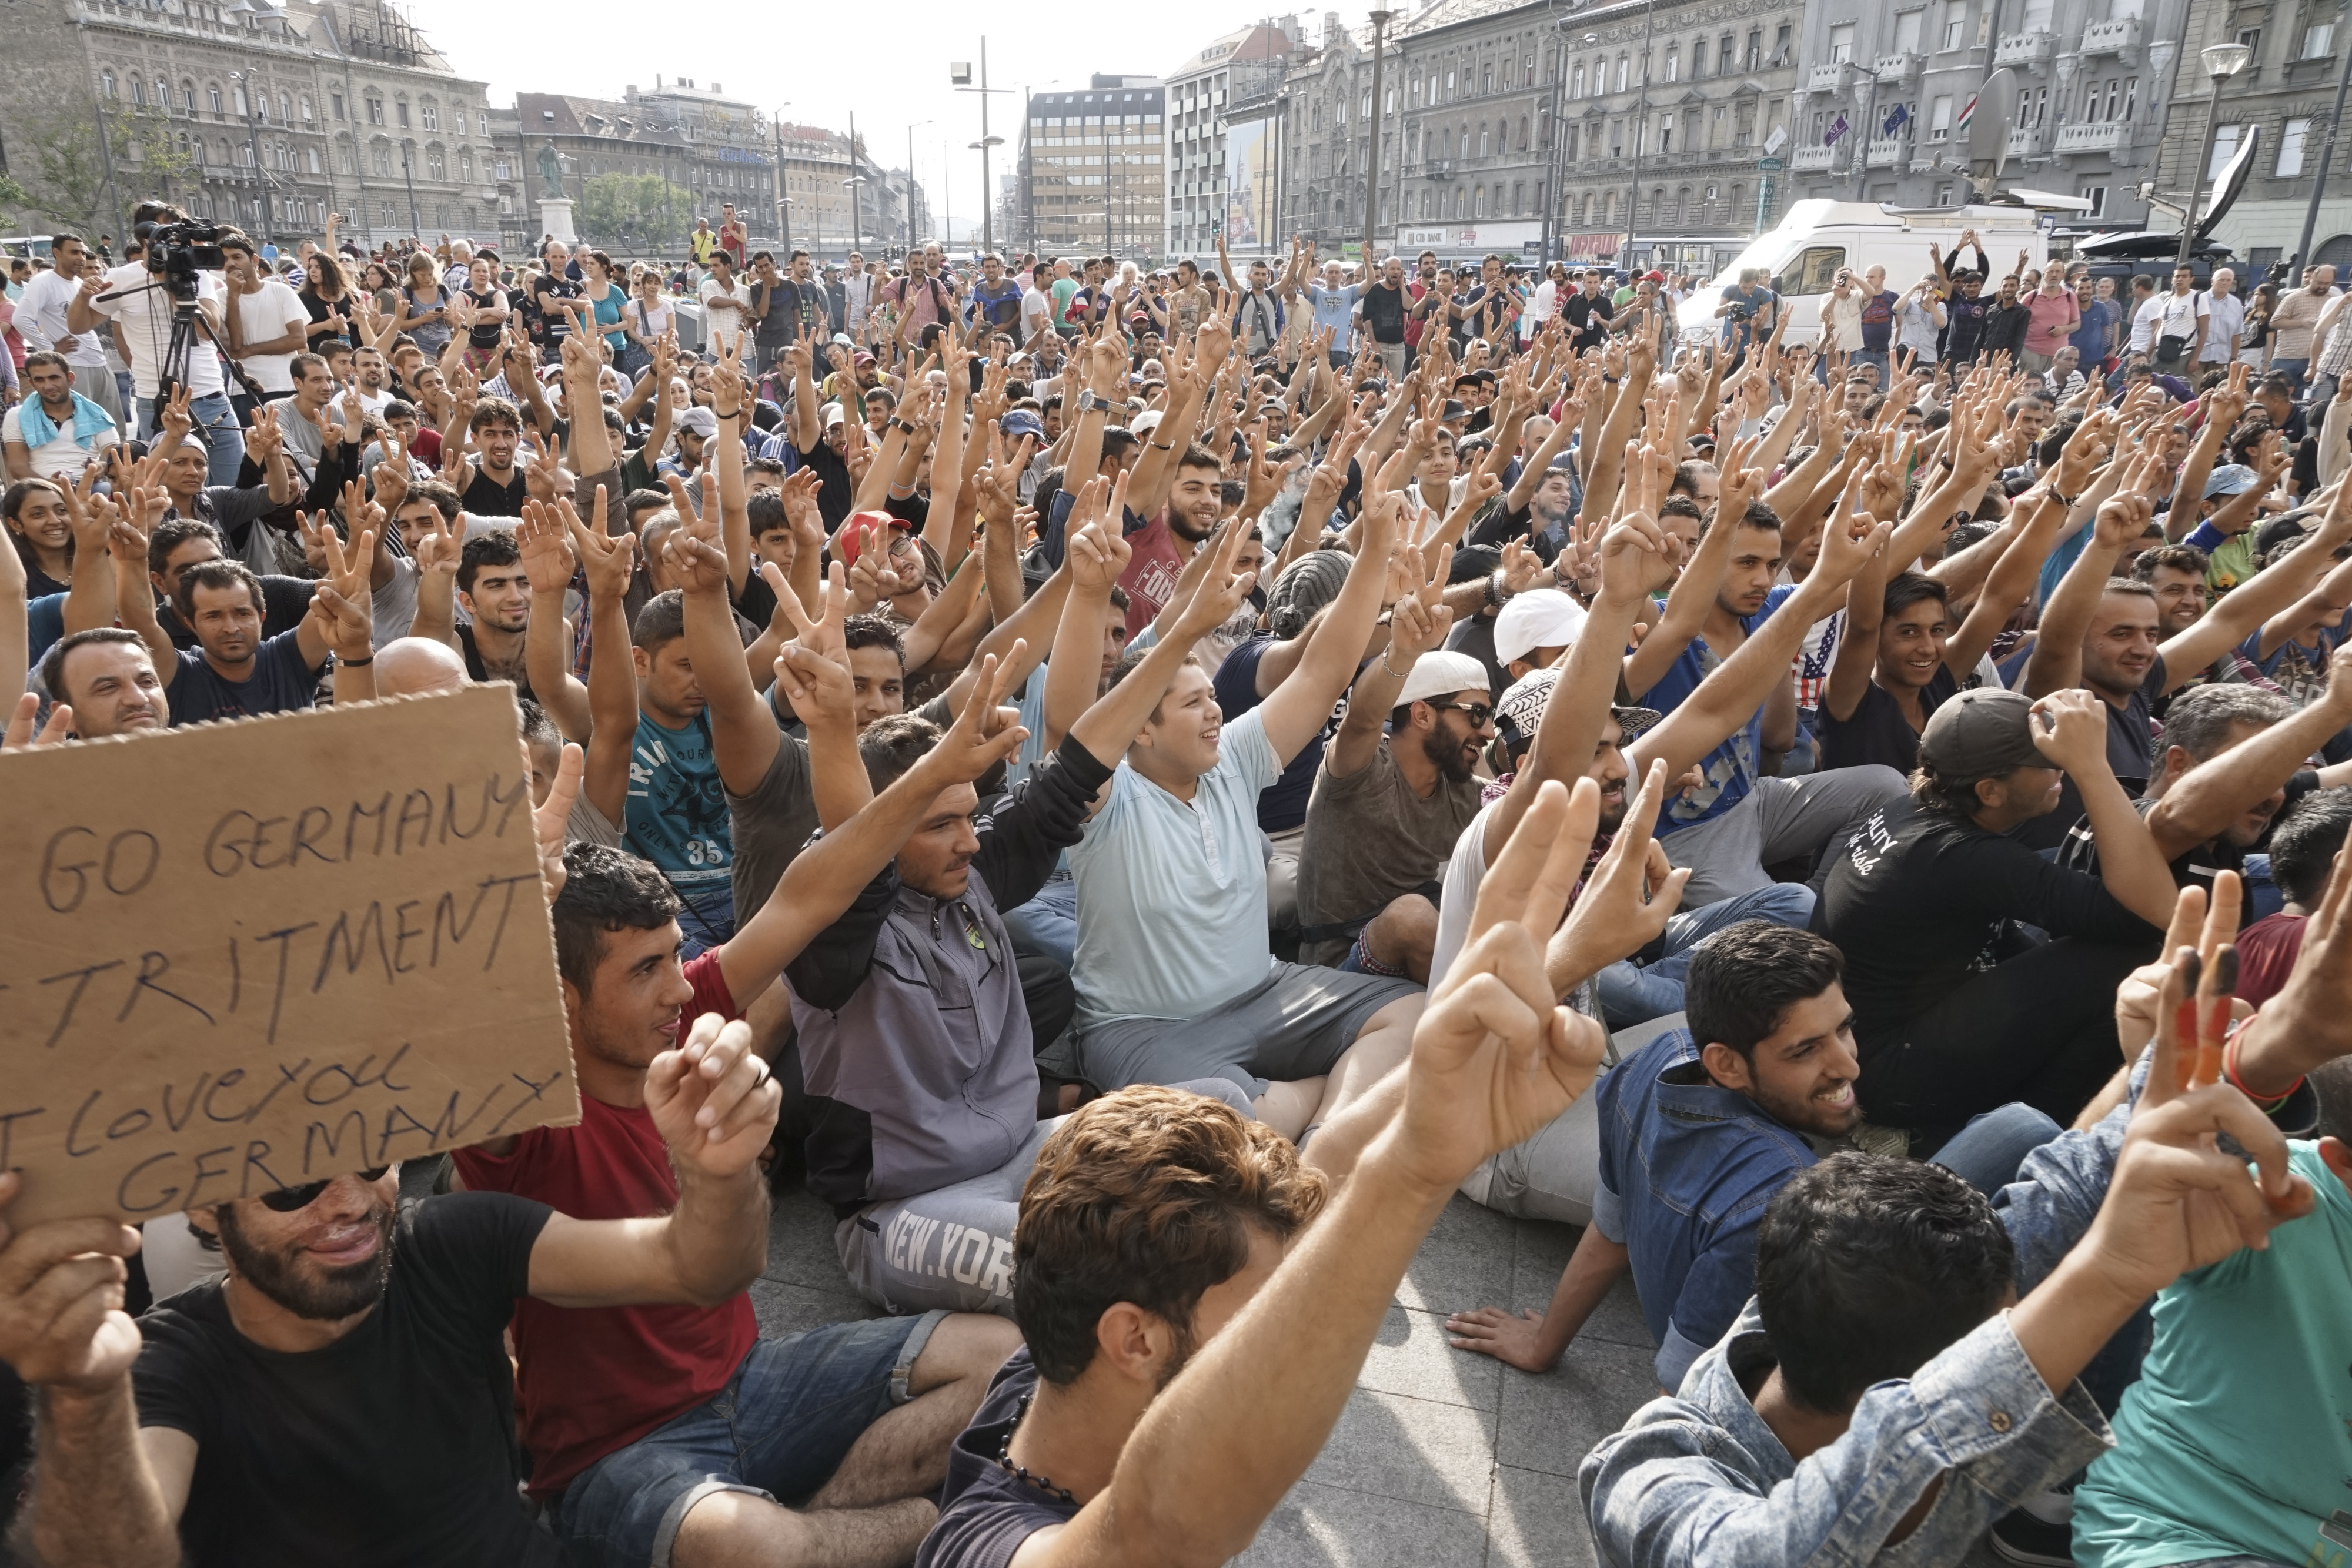 Syrian refugees strike in front of Budapest Keleti railway station. Refugee crisis. Budapest, Hungary, Central Europe, 3 September 2015. Licensed under Creative Commons